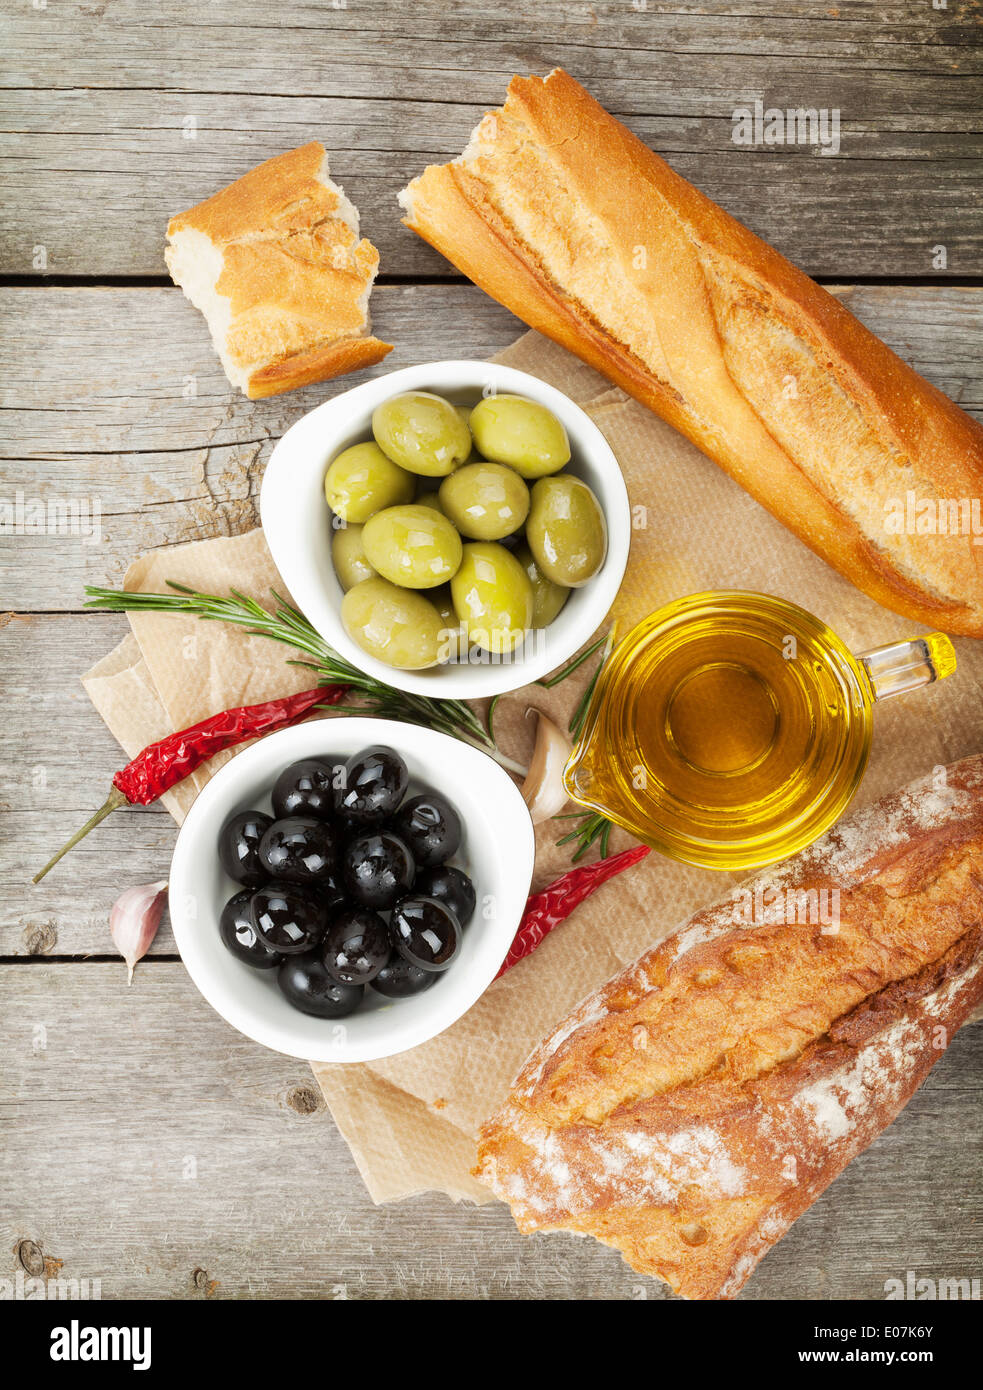 Italian food appetizer of olives, bread and spices on wooden table background - Stock Image